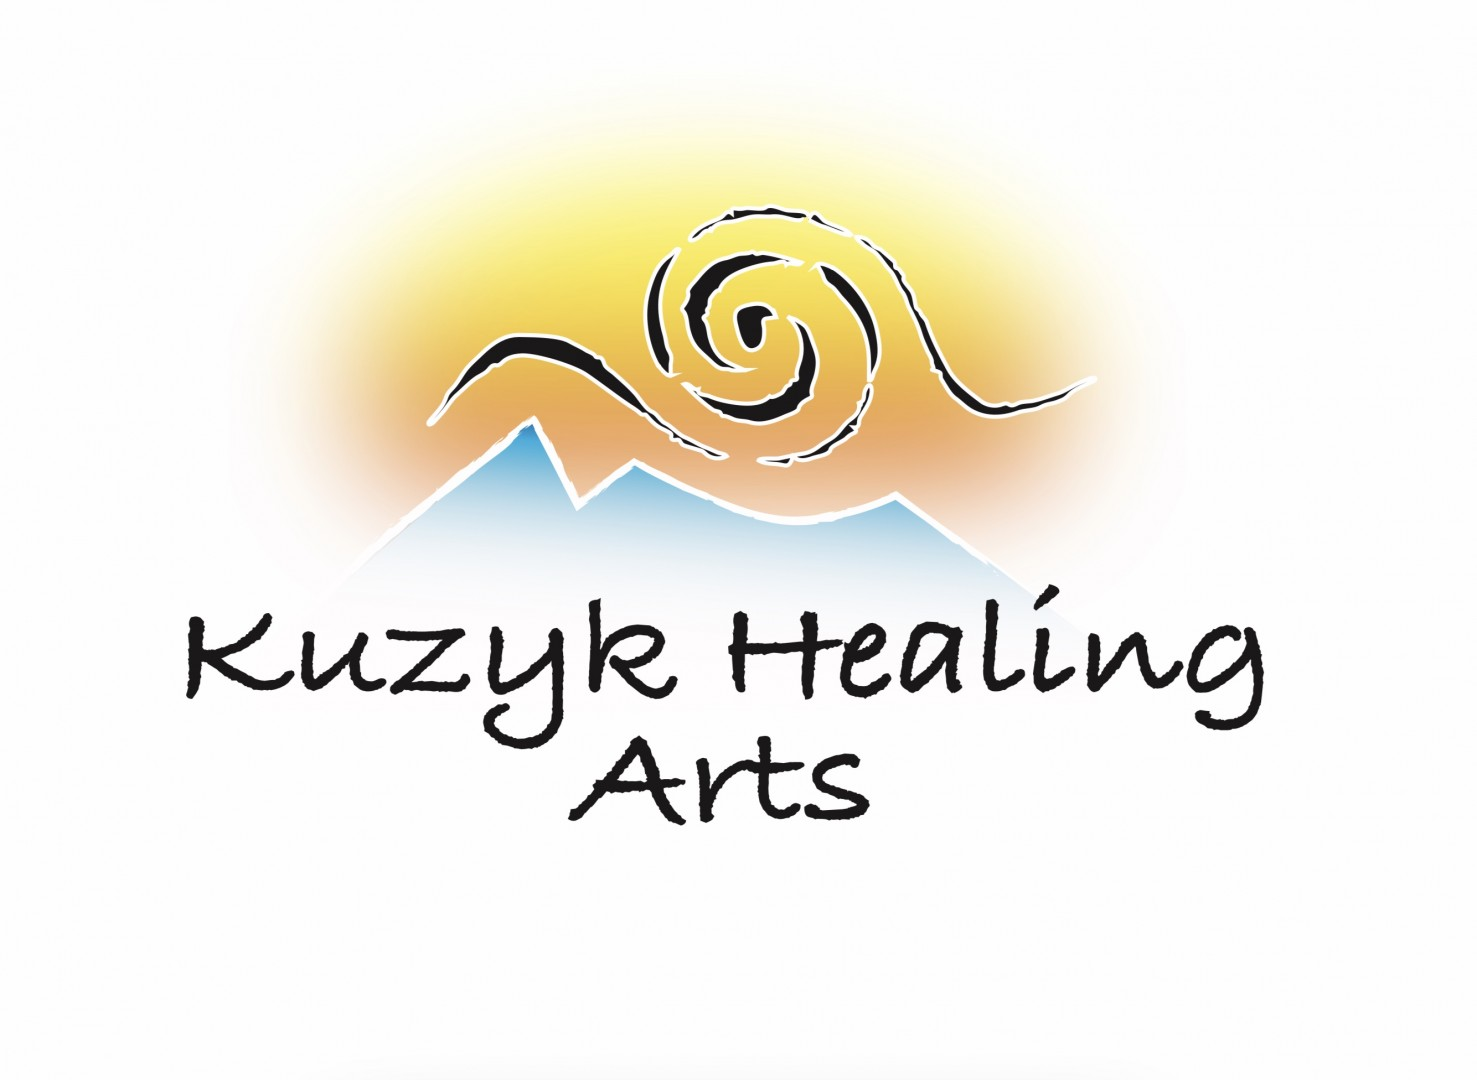 Techniques used in BodyTalk - Kuzyk Healing Arts in Sandpoint, Idaho